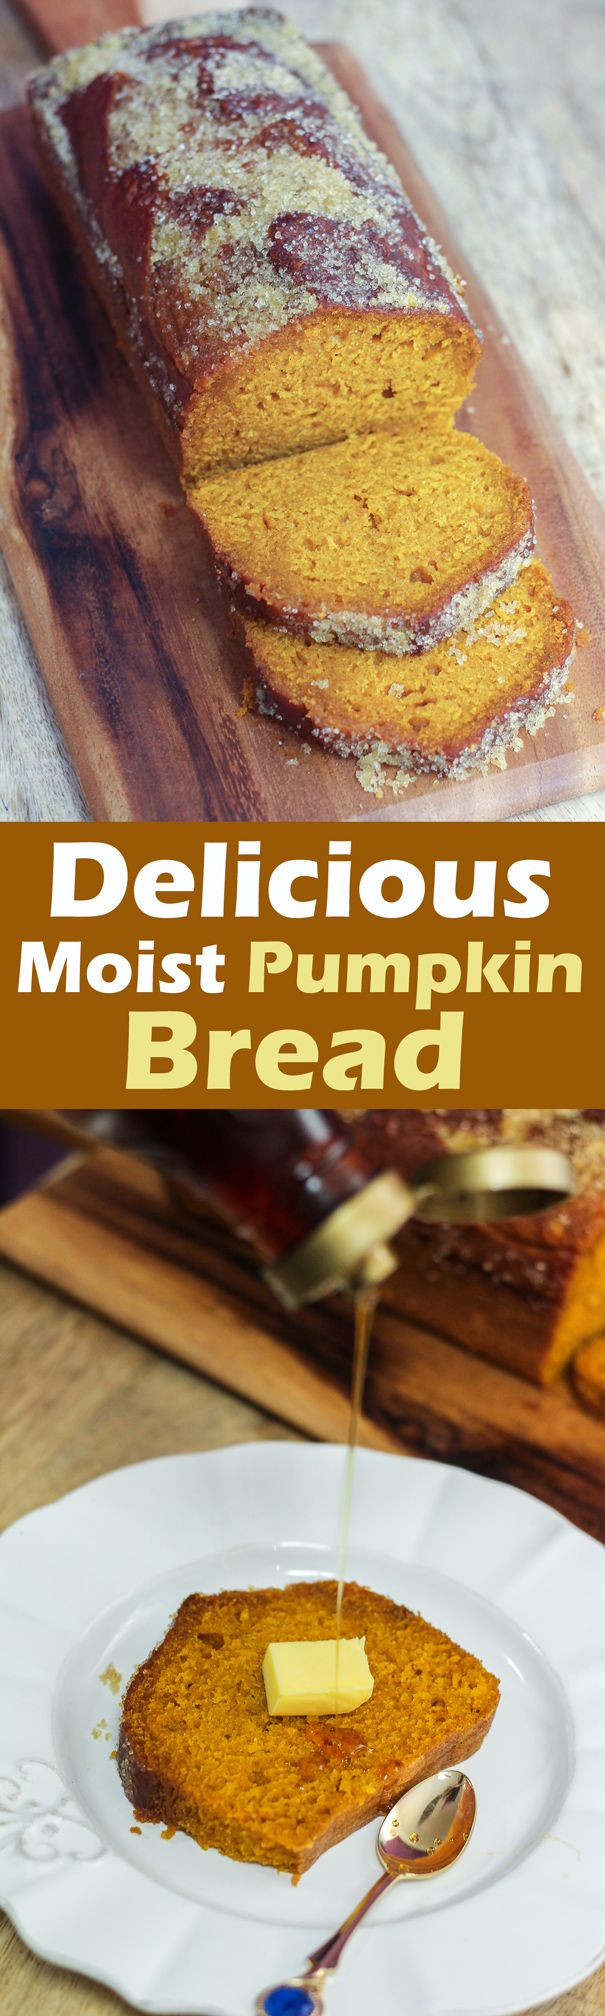 You need to add this lip-smacking Delicious Moist Pumpkin Bread to your baking list.